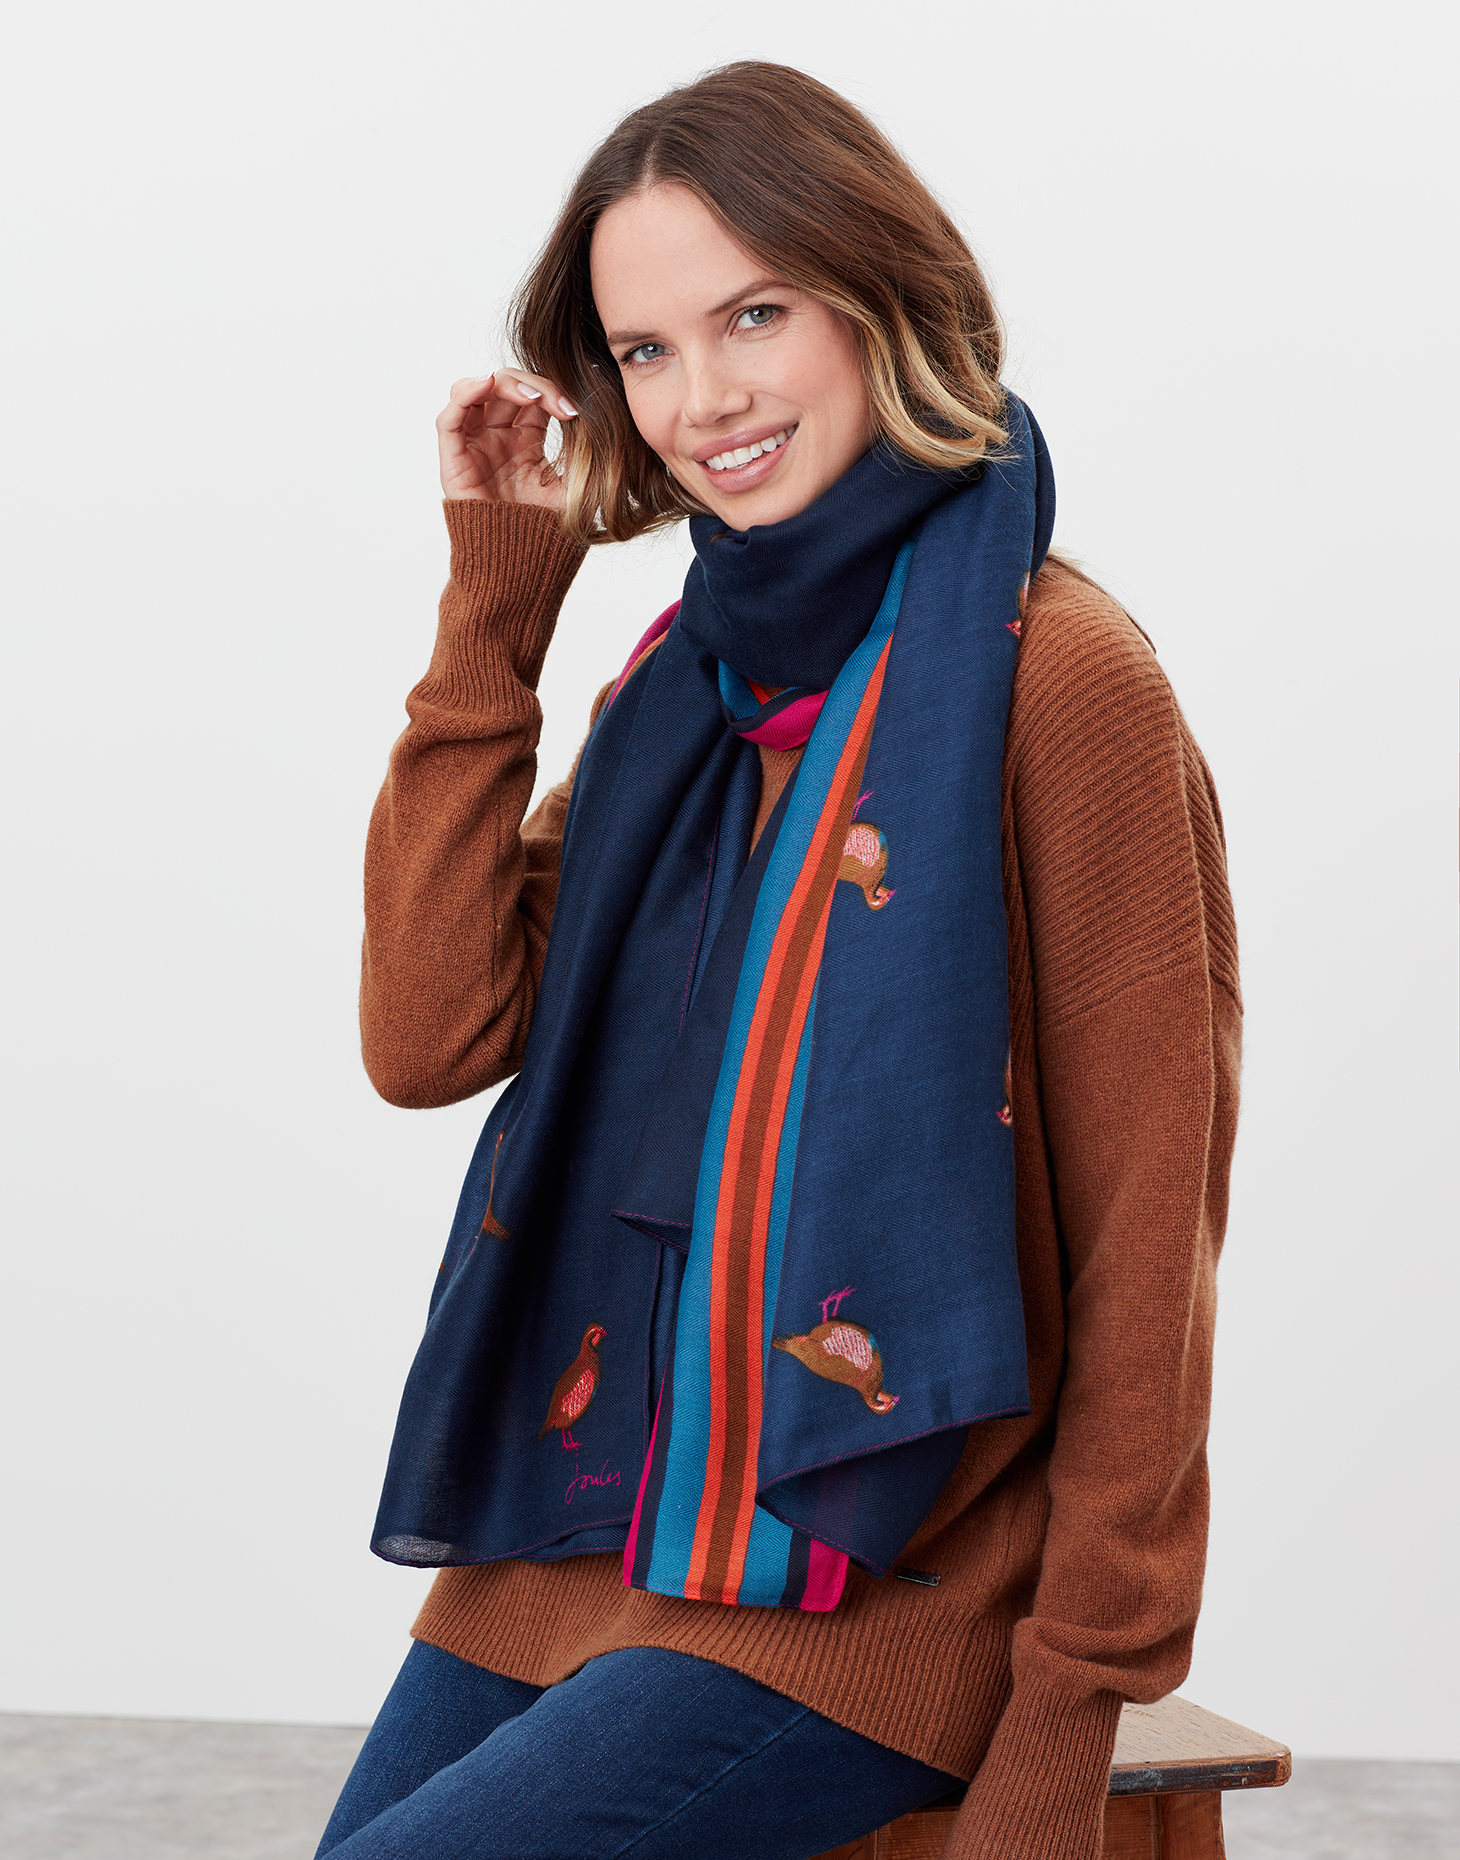 a woman wearing a rust coloured knitted jumper and blue patterned scarf.